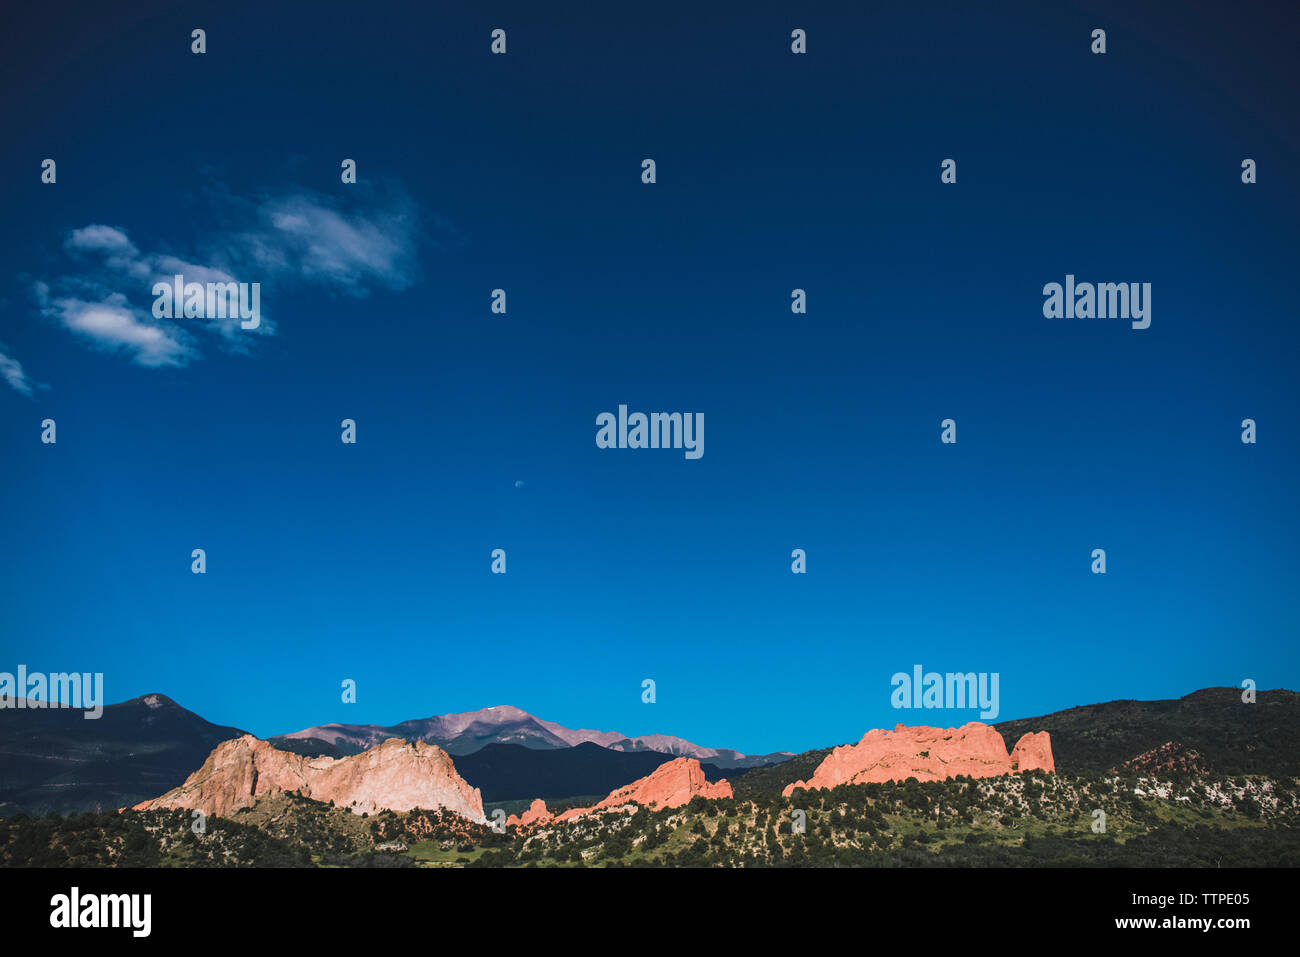 Scenic view of Garden of the Gods against sky - Stock Image